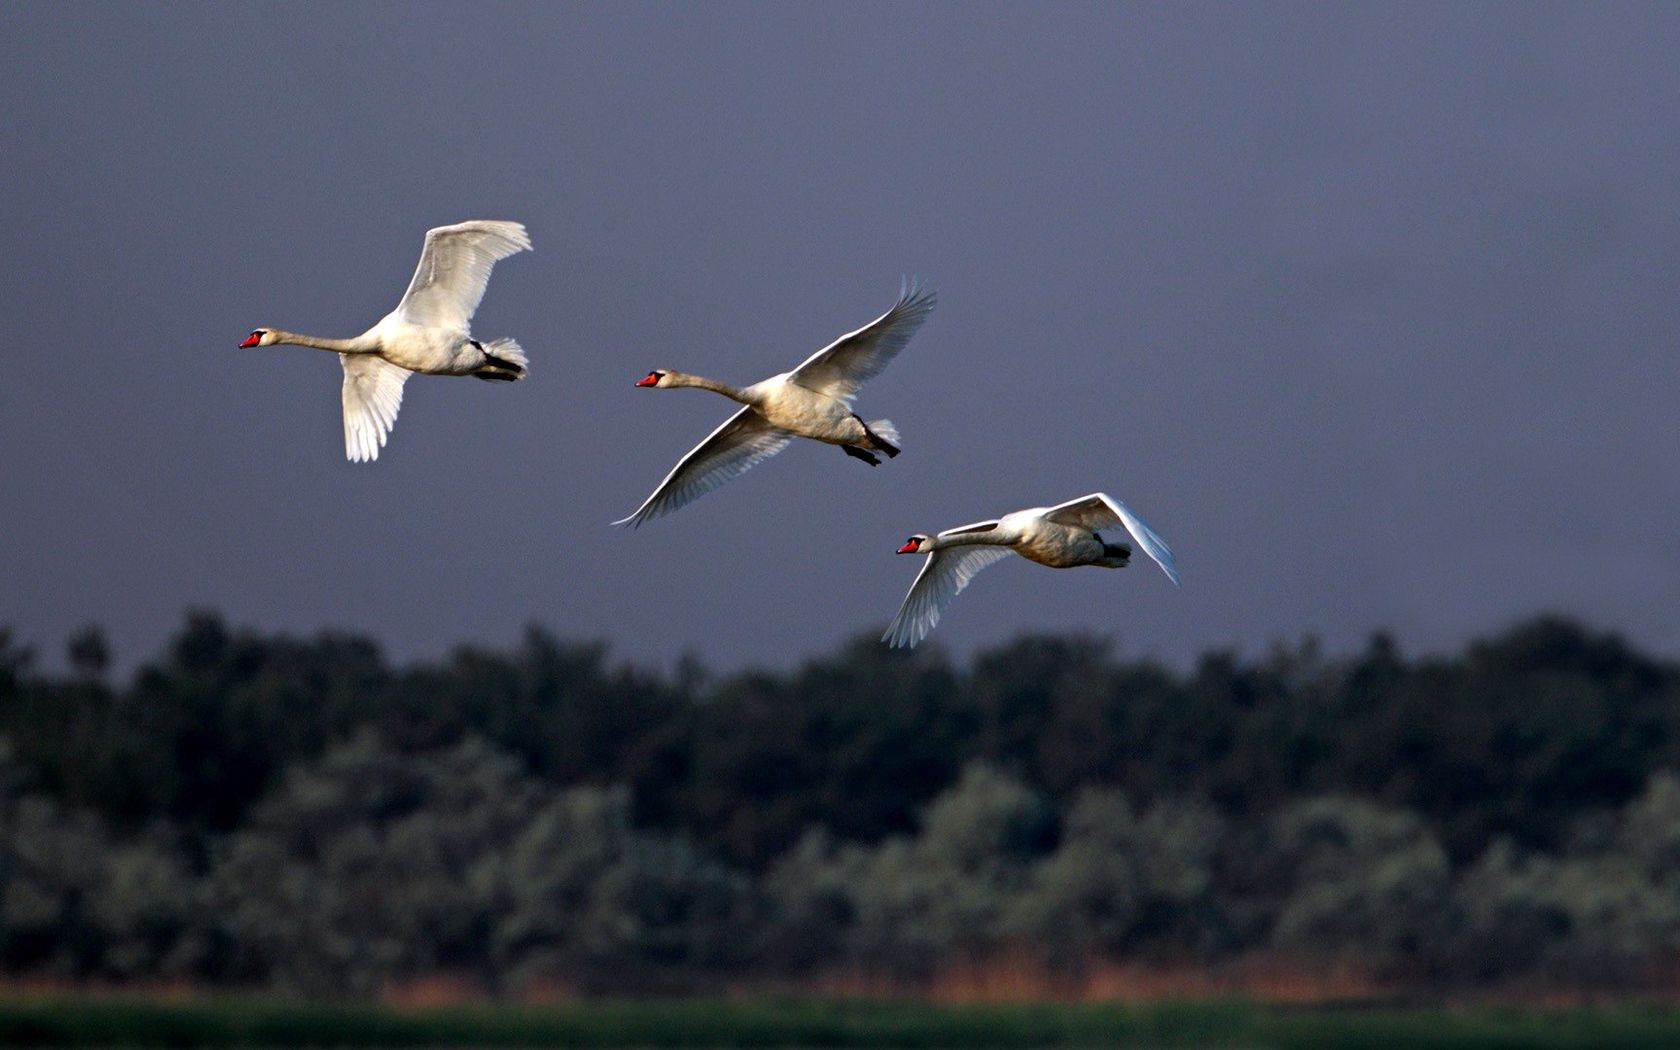 132374 download wallpaper Animals, Swans, Flight, Sky, Mainly Cloudy, Overcast, Birds screensavers and pictures for free